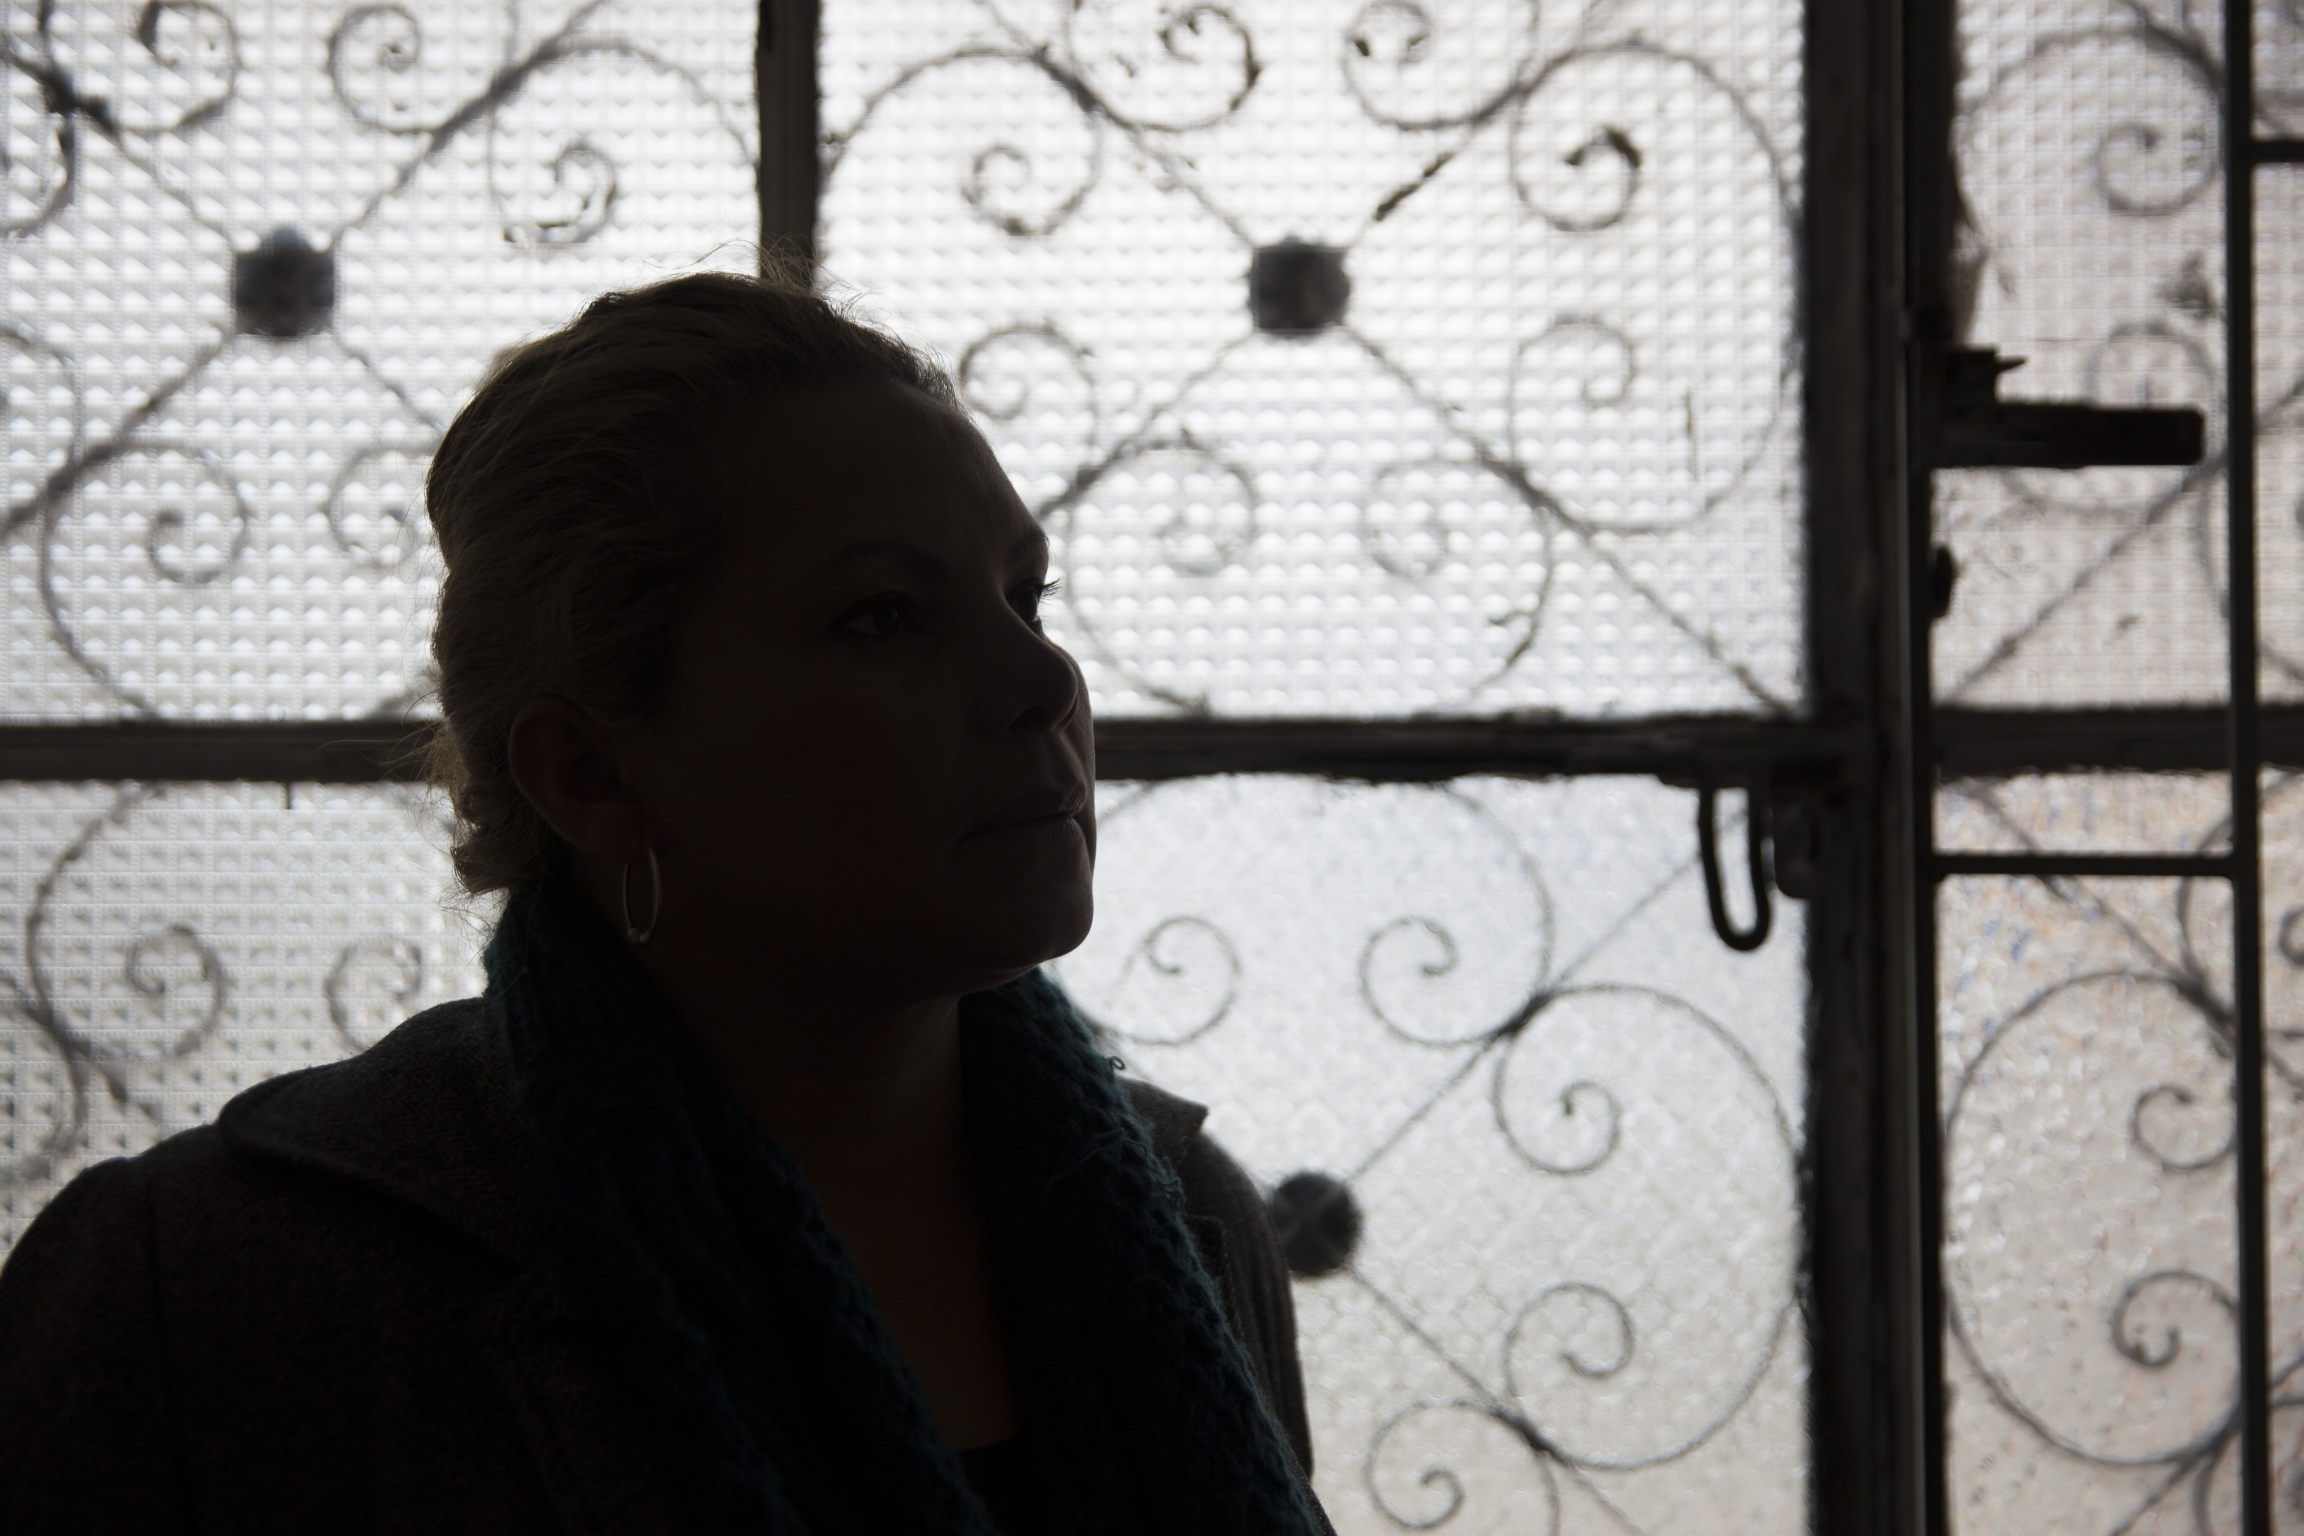 the silhouette of a woman